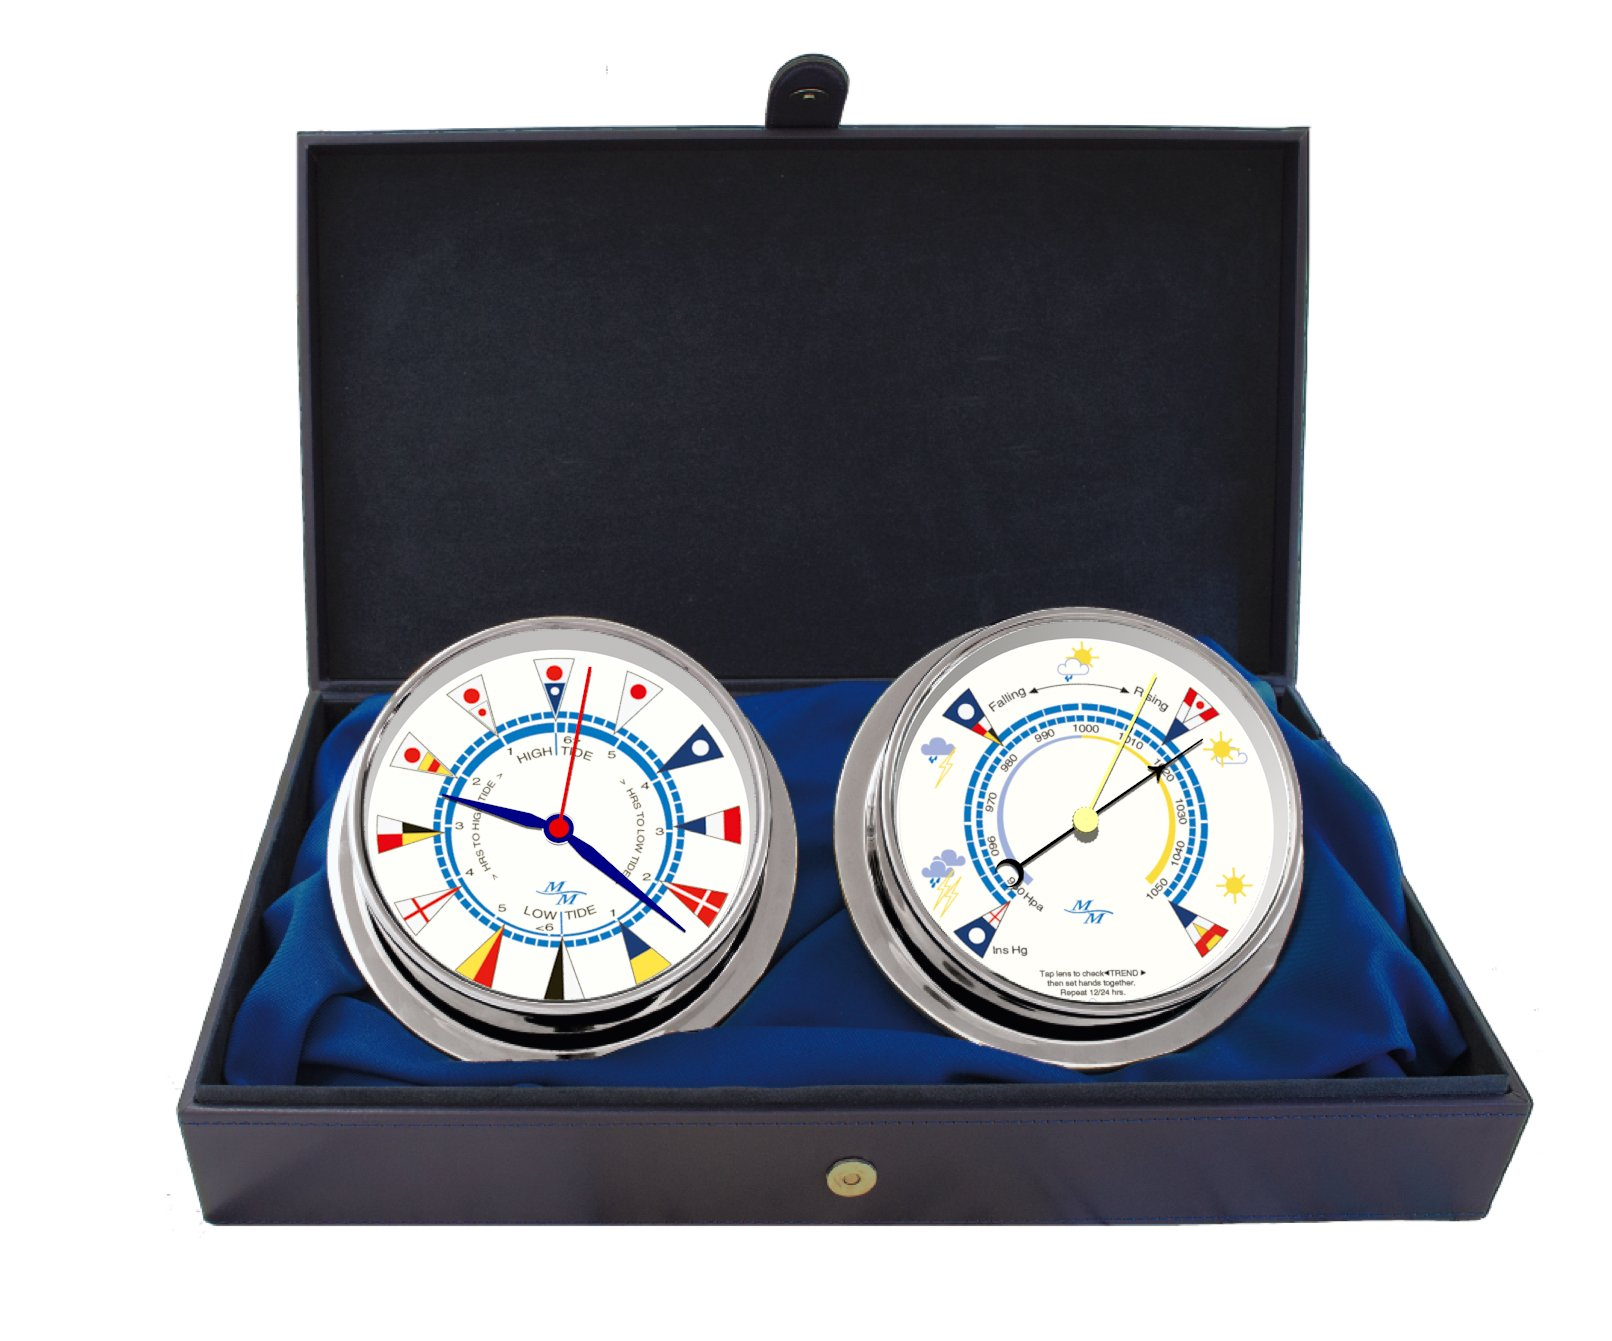 Cabin Gift Set Time & Tide Clock & Barometer by Master-Mariner, Chrome finish, Ivory flag dial